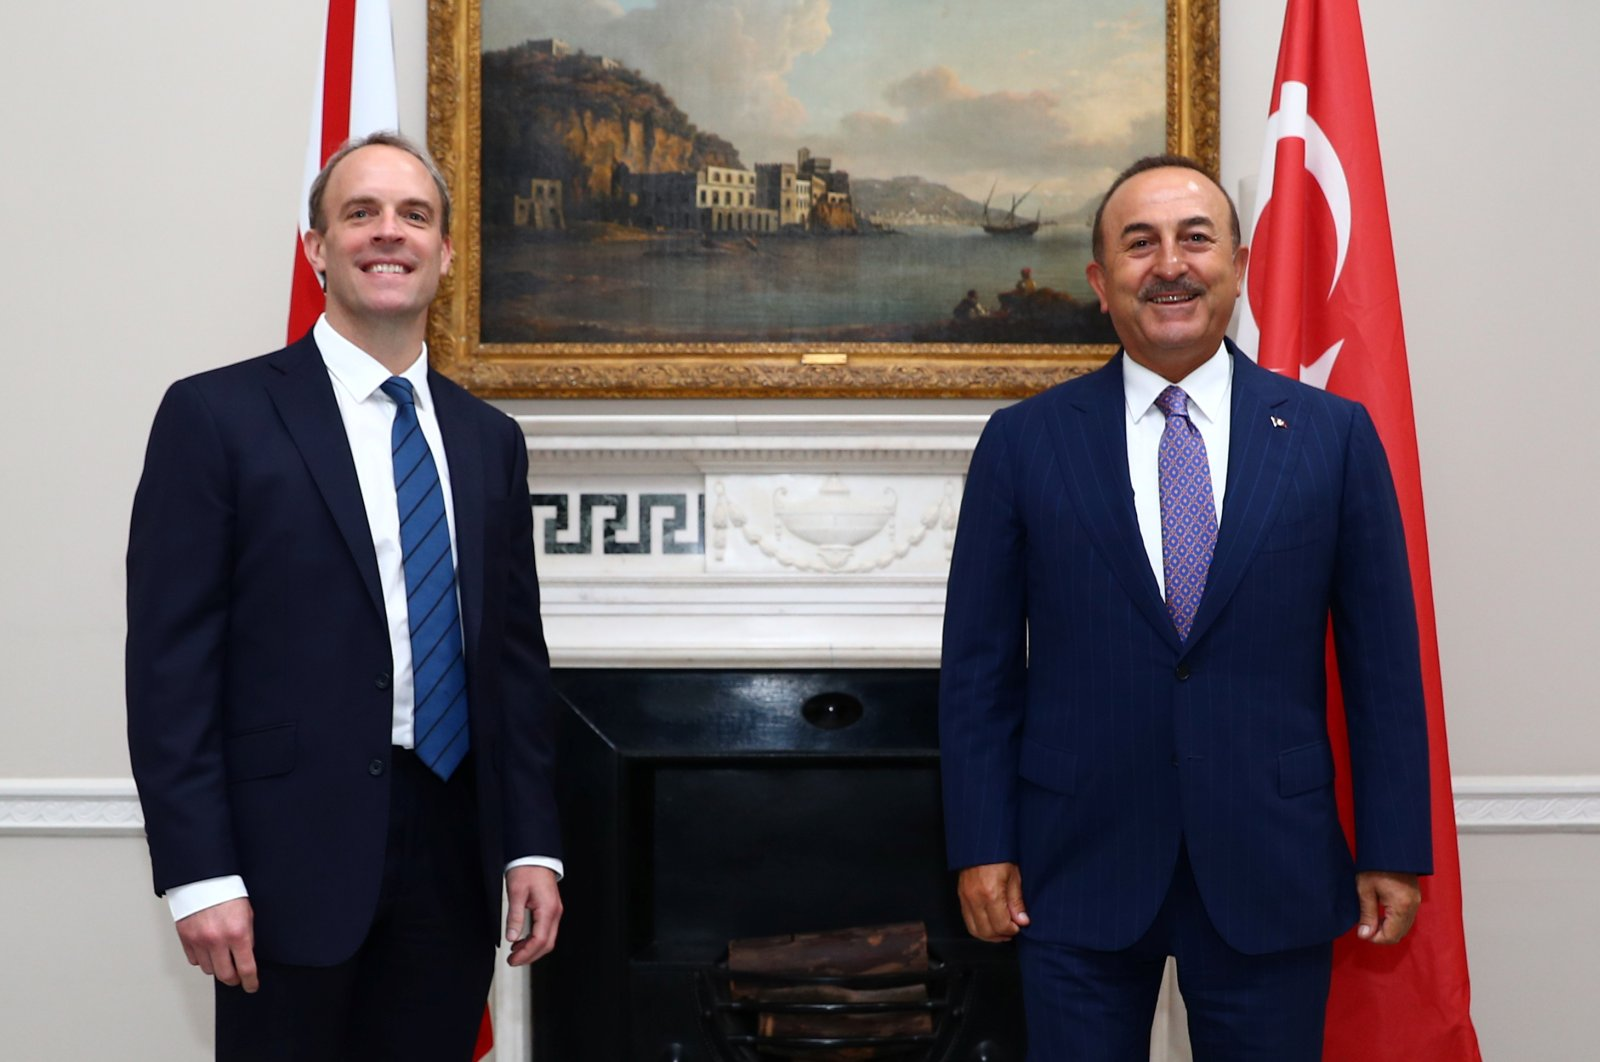 Britain's Foreign Secretary Dominic Raab (L) reacts as he poses for a photograph with Turkey's Foreign Minister Mevlüt Çavuşoğlu, at Carlton Gardens in London, on July 8, 2020. (AFP Photo)